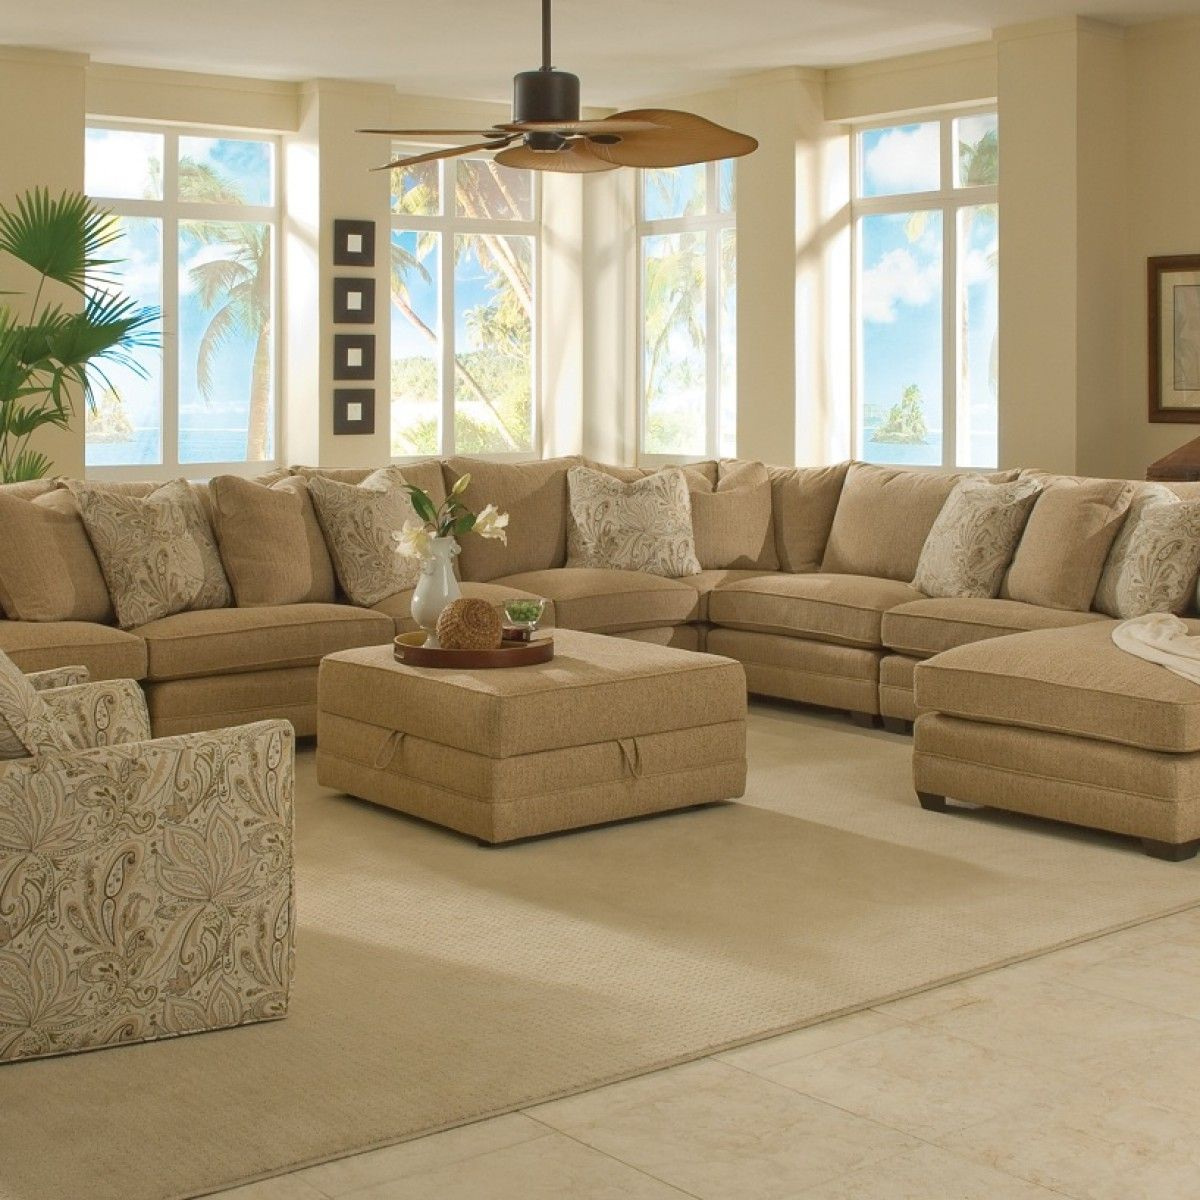 Magnificent large sectional sofas family room for Large family living room